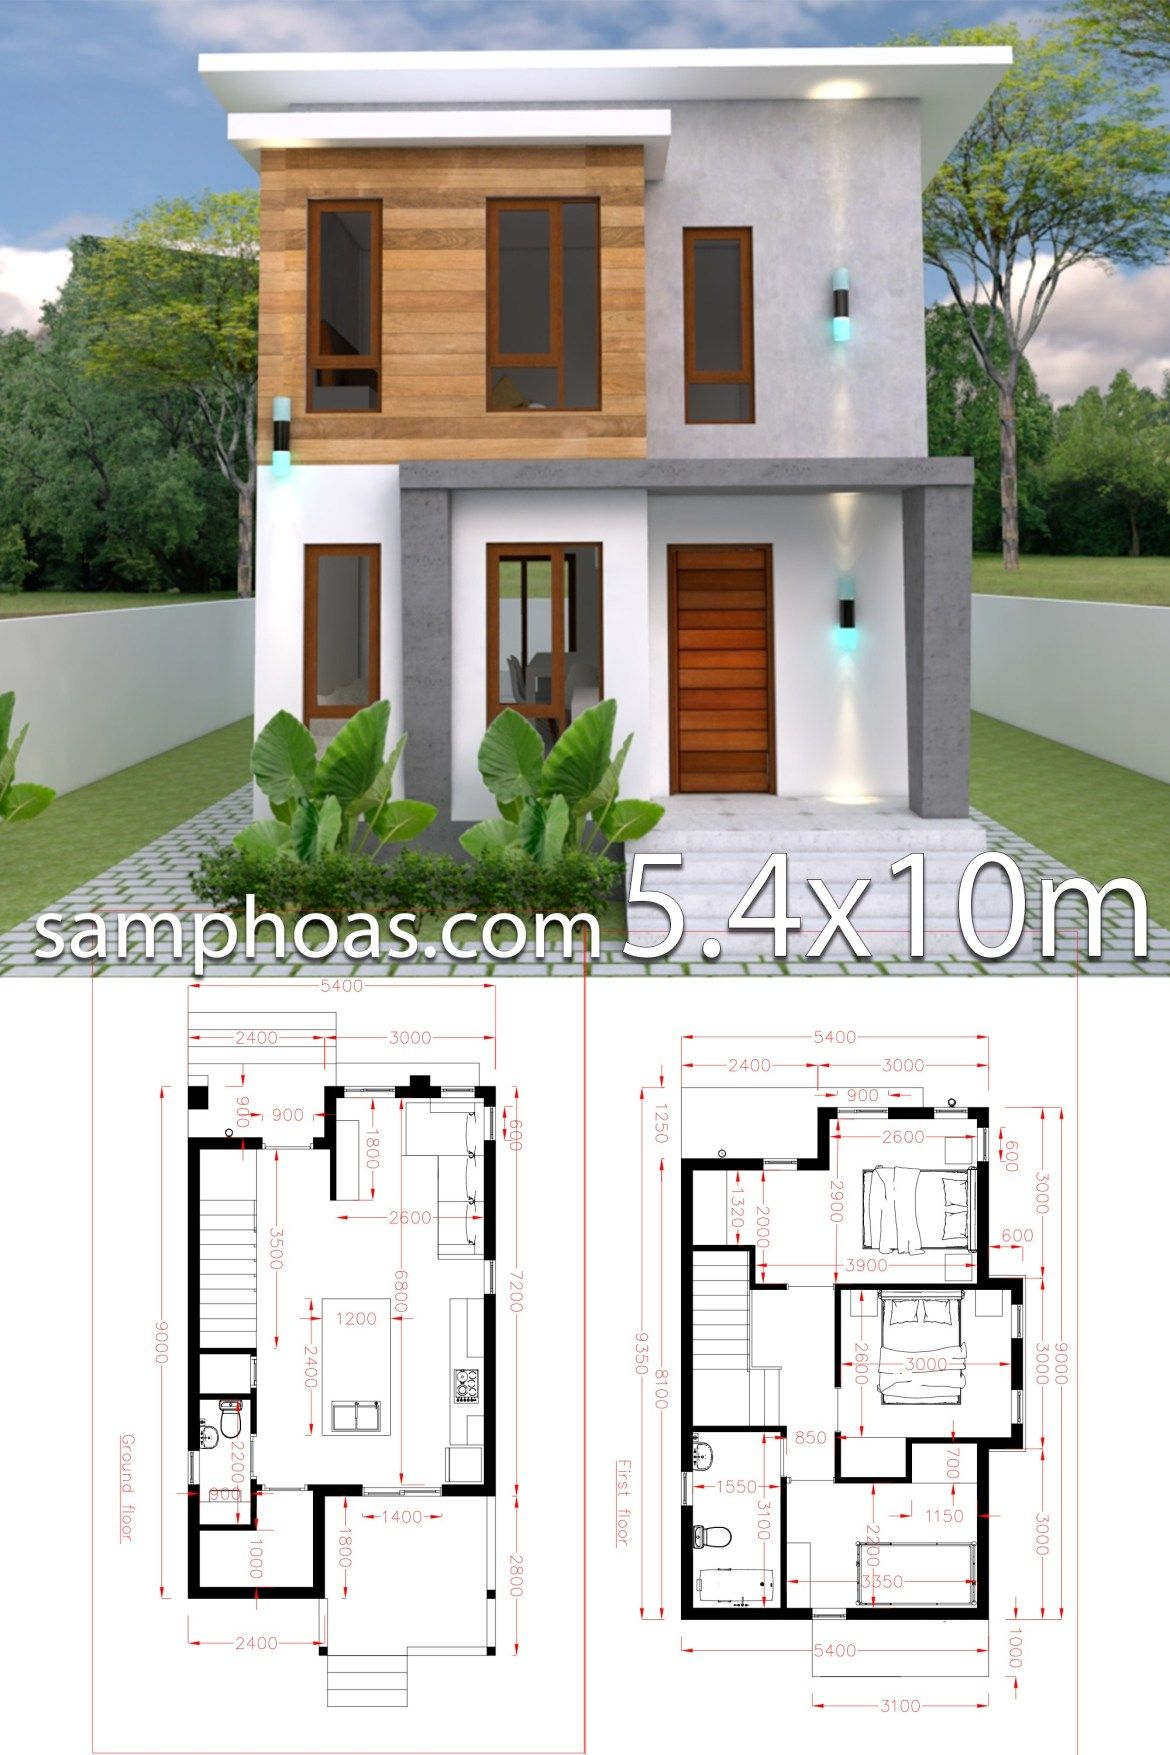 Small Home Design Plan 5 4x10m With 3 Bedroom Samphoas Plansearch Small House Design Plans House Front Design Model House Plan